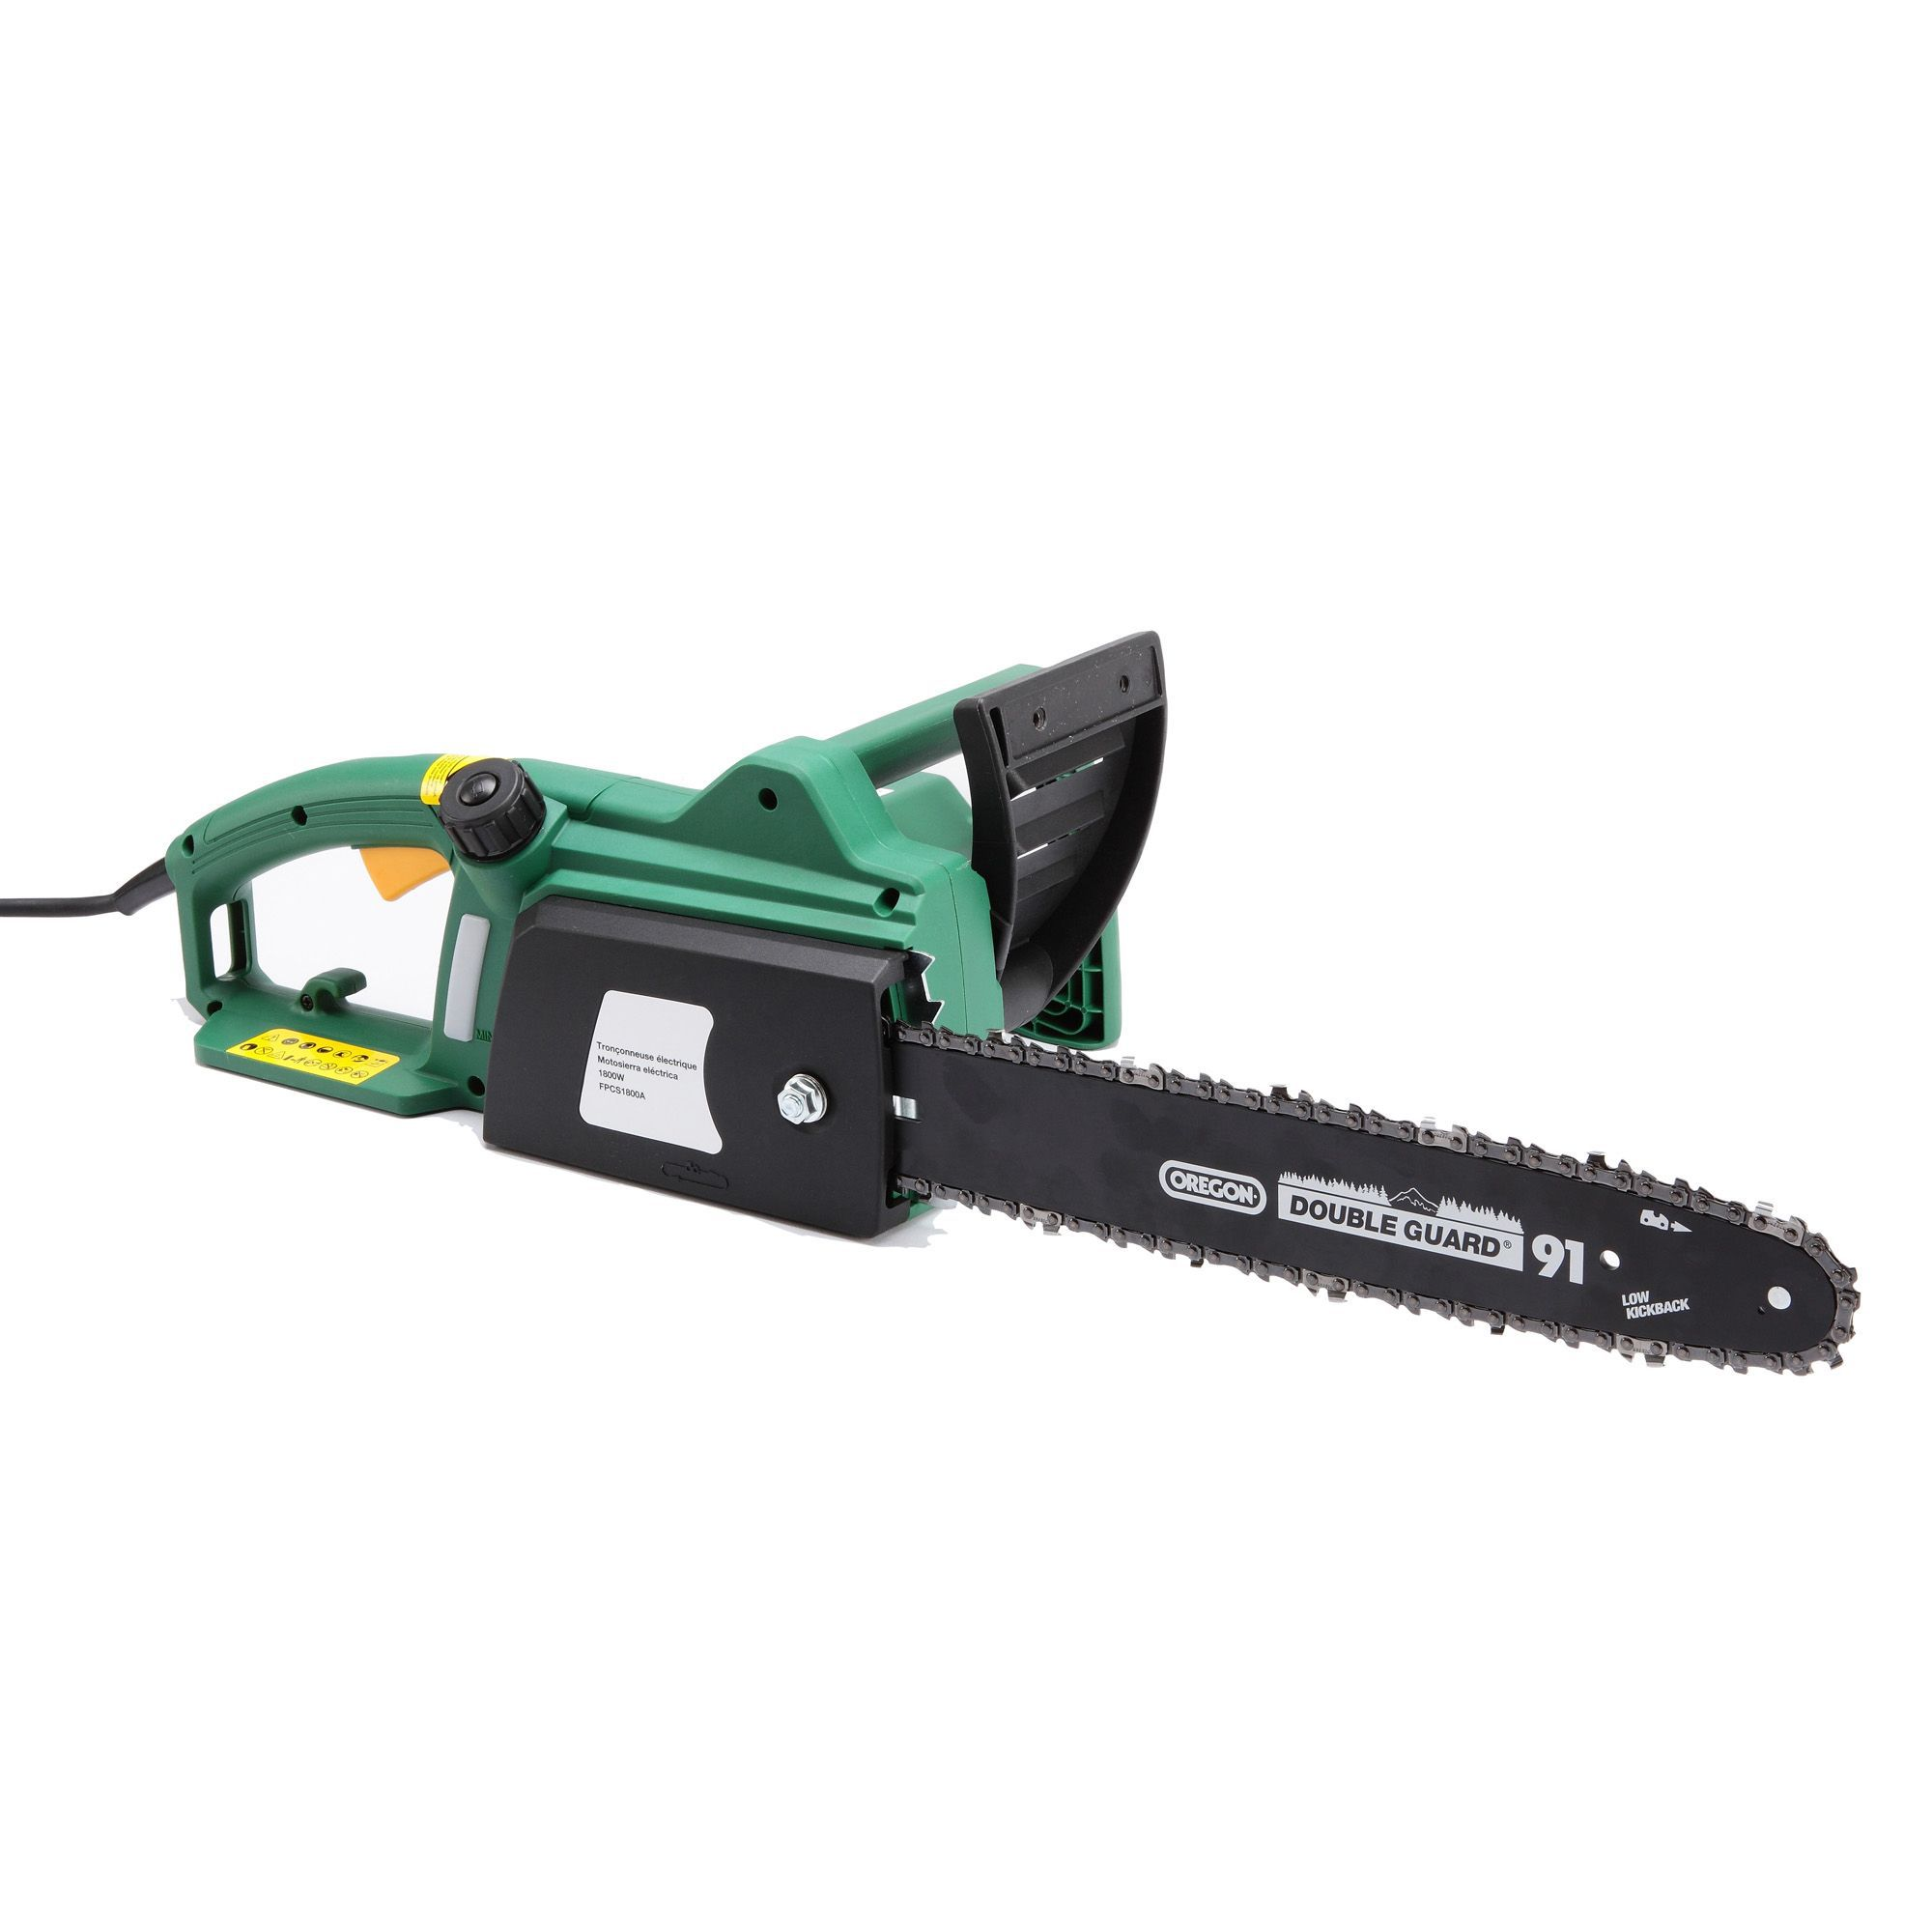 1800w Corded Electric Chainsaw Departments Diy At B Amp Q